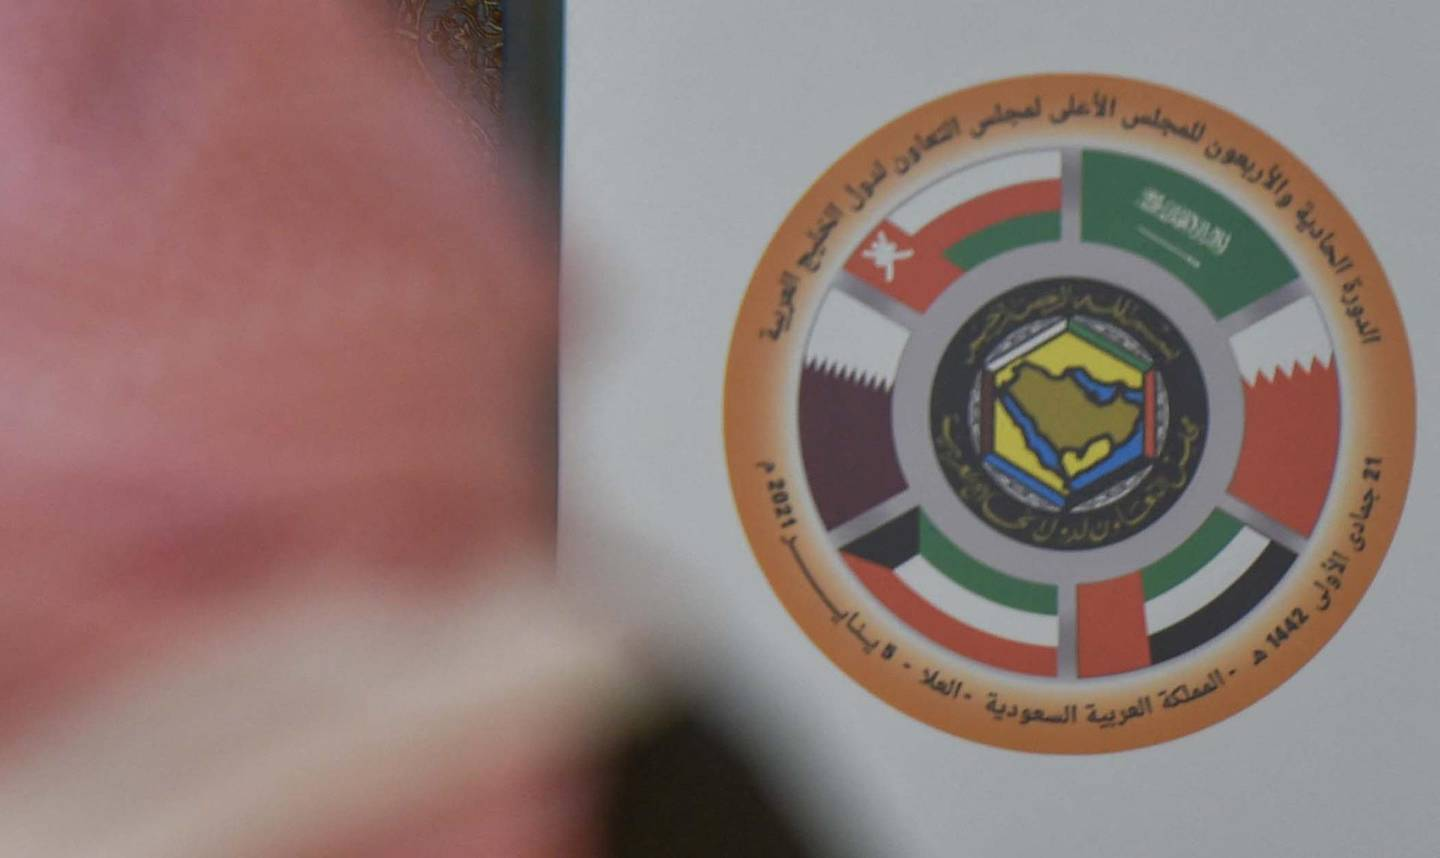 A Saudi journalist is pictured in front of the logo of the Gulf Cooperation Council (GCC) and the Qatari national flag at the media centre ahead of the 41st summit in the city of al-Ula in northwestern Saudi Arabia on January 5, 2021. - Saudi Arabia will reopen its borders and airspace to Qatar, US and Kuwaiti officials said, a major step towards ending a diplomatic rift that has seen Riyadh lead an alliance isolating Doha. The bombshell announcement came on the eve of GCC annual summit in the northwestern Saudi Arabian city of Al-Ula, where the dispute was already set to top the agenda. (Photo by FAYEZ NURELDINE / AFP)